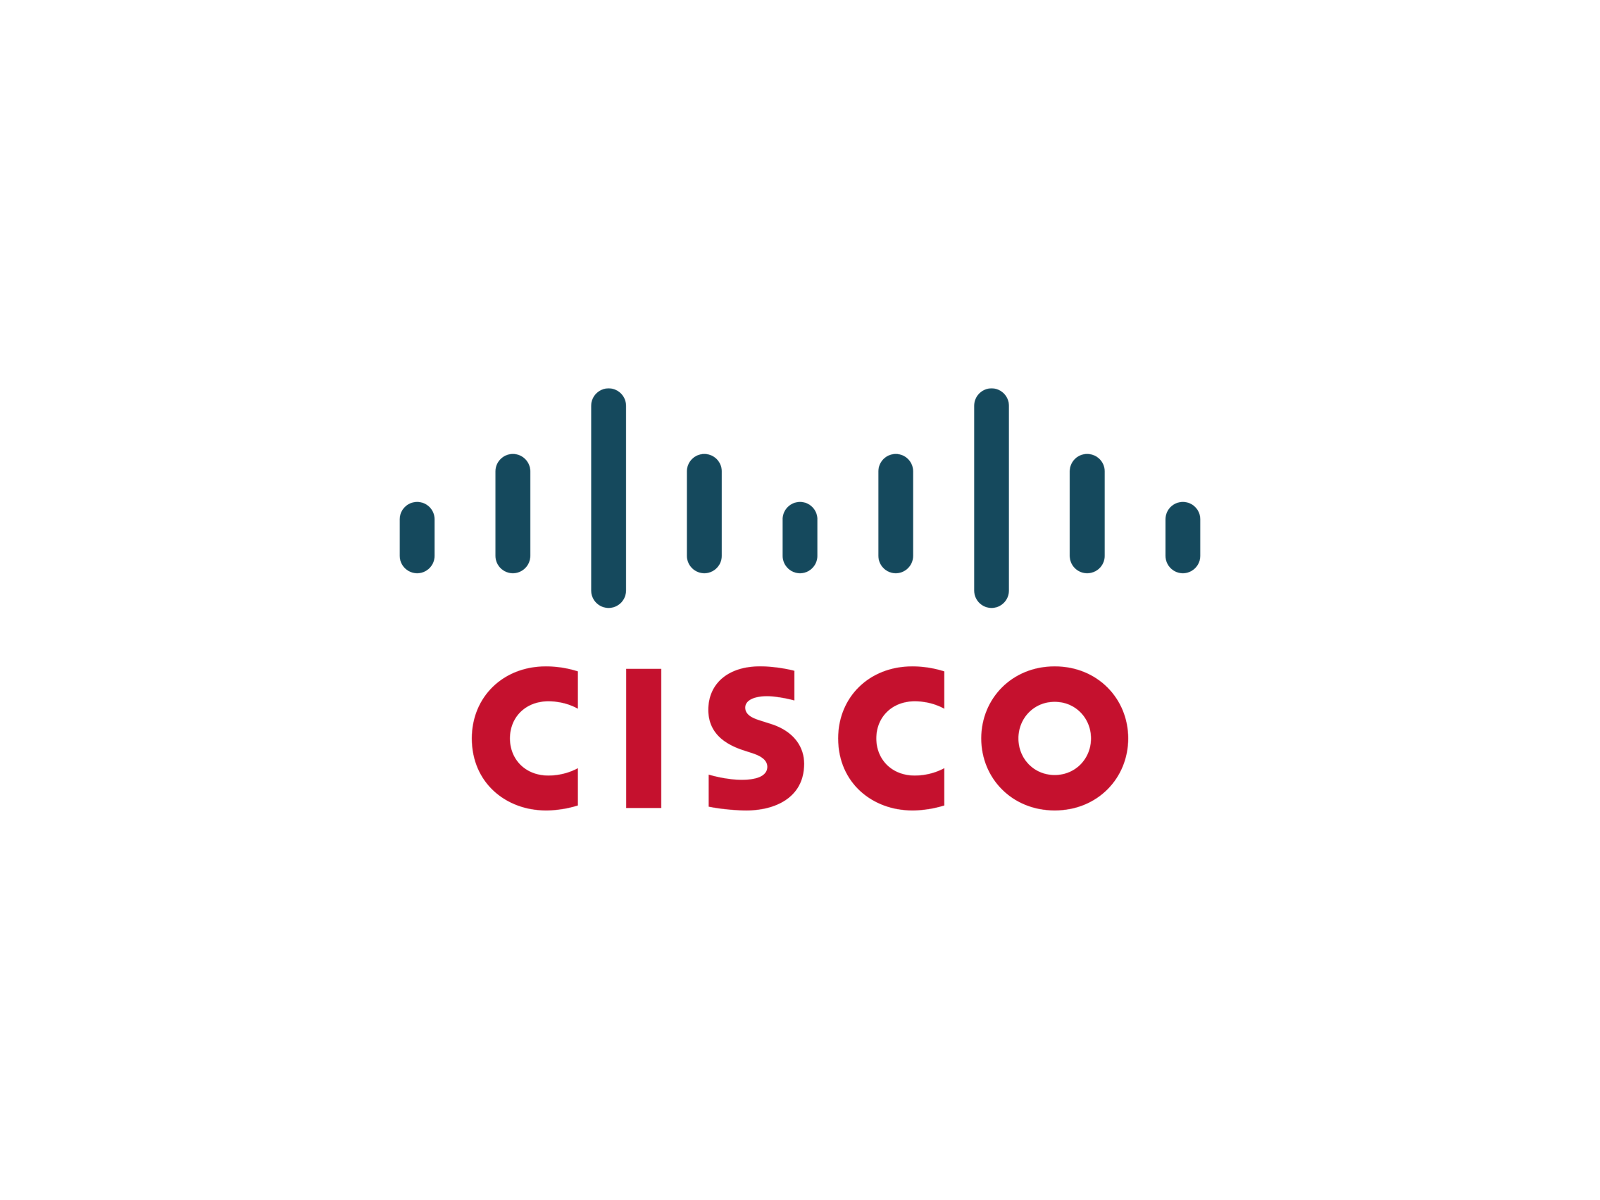 Getting Issue While Exporting A Netflow Data On A Cisco Router Get The Simple Solution To Proceed Cisco Systems Cisco Logos